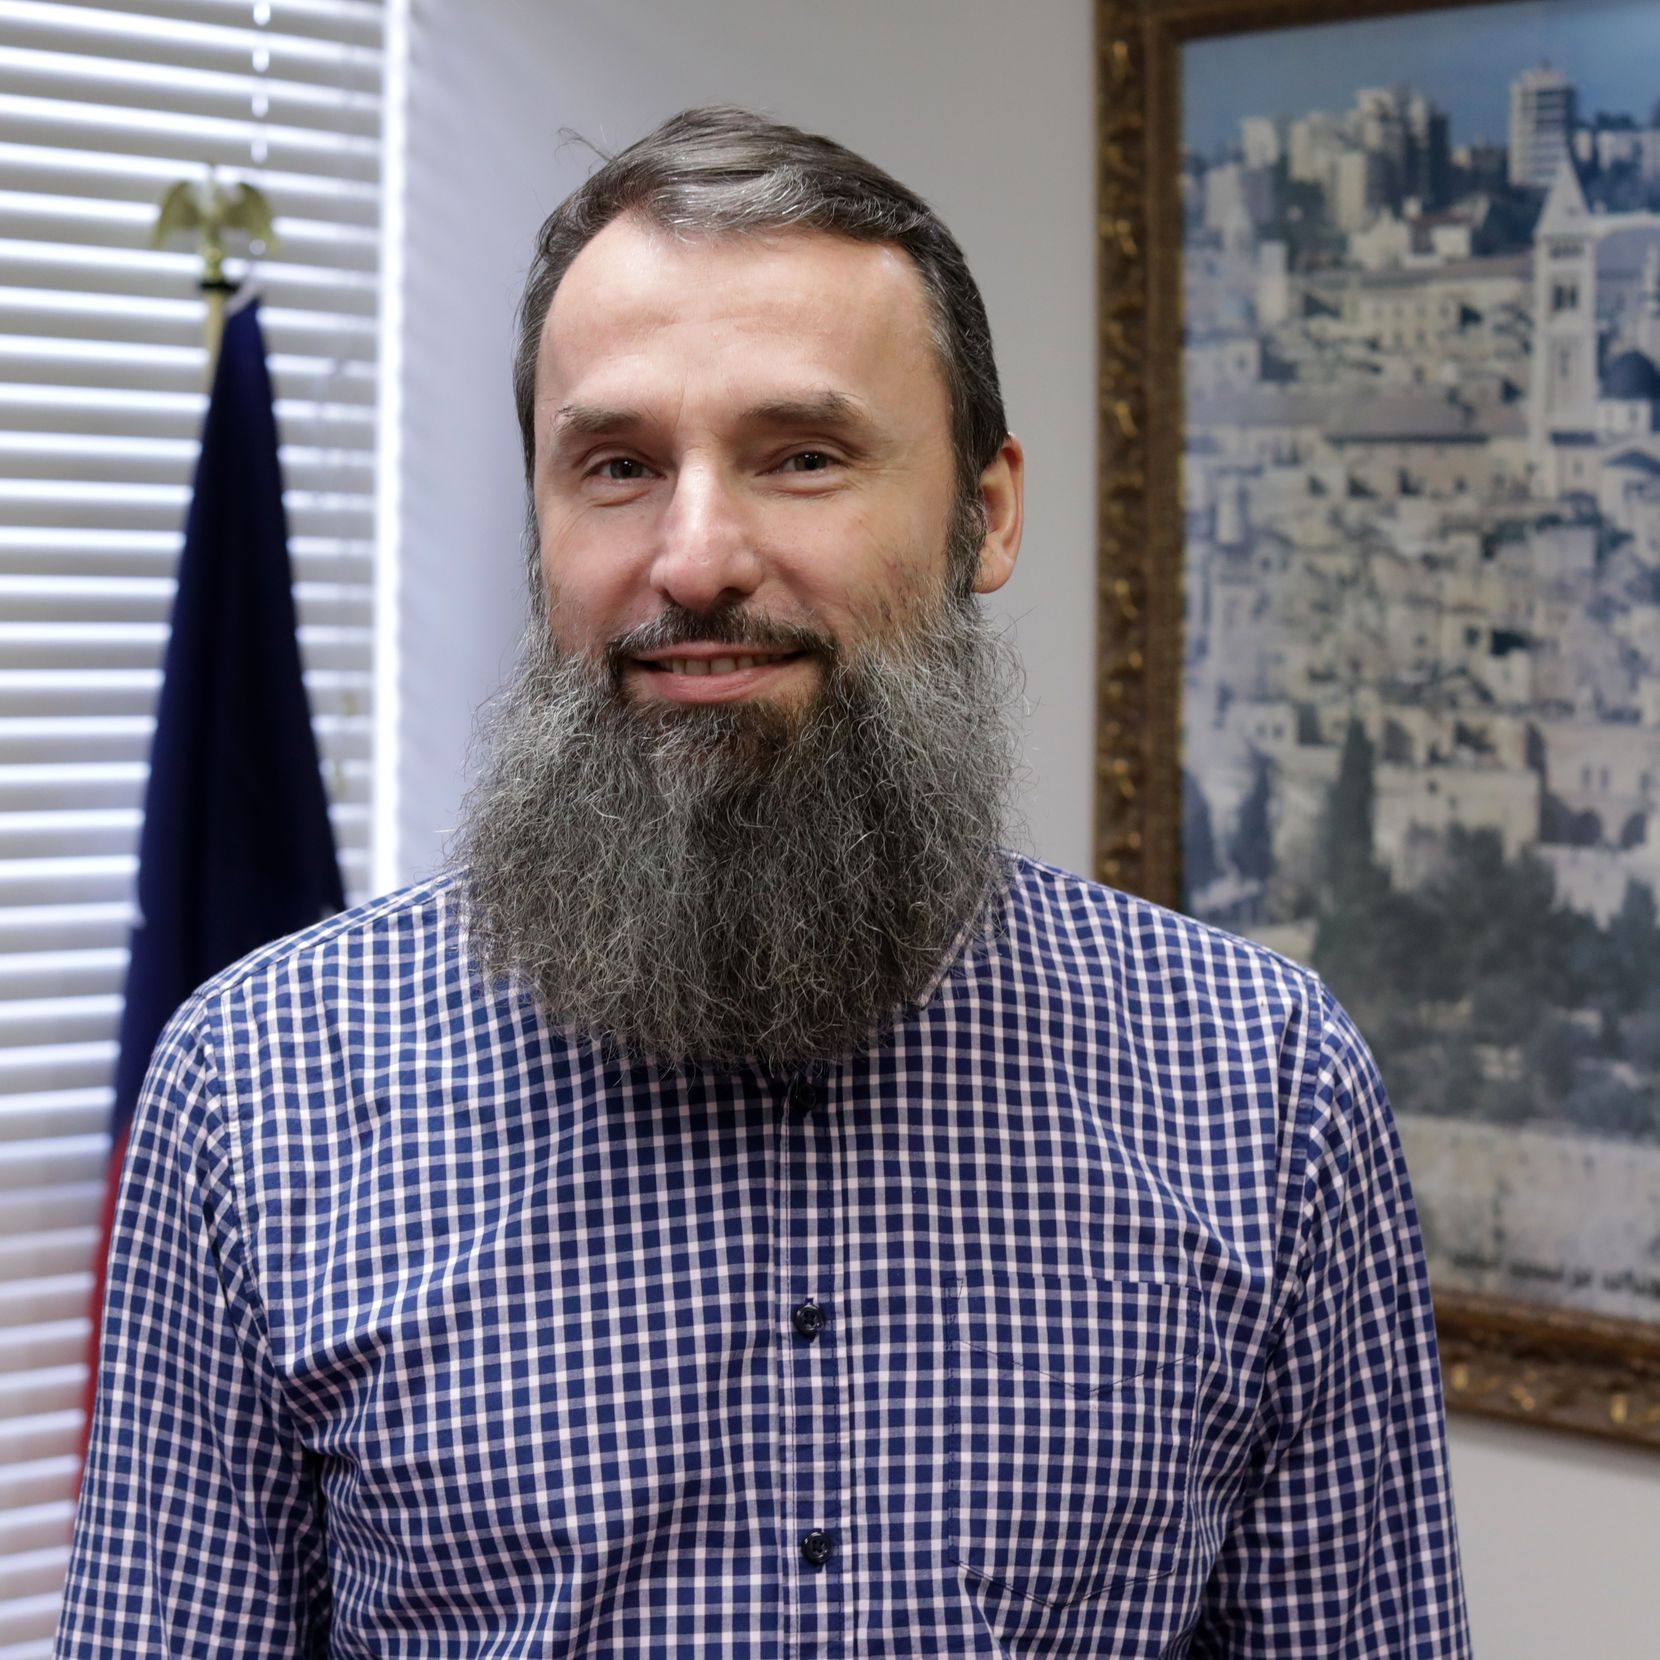 Imam Shpendim Nadzaku of the Islamic Association of North Texas says he was heartened when Christian faith leaders stood up for his mosque in the face of gun-toting protesters.